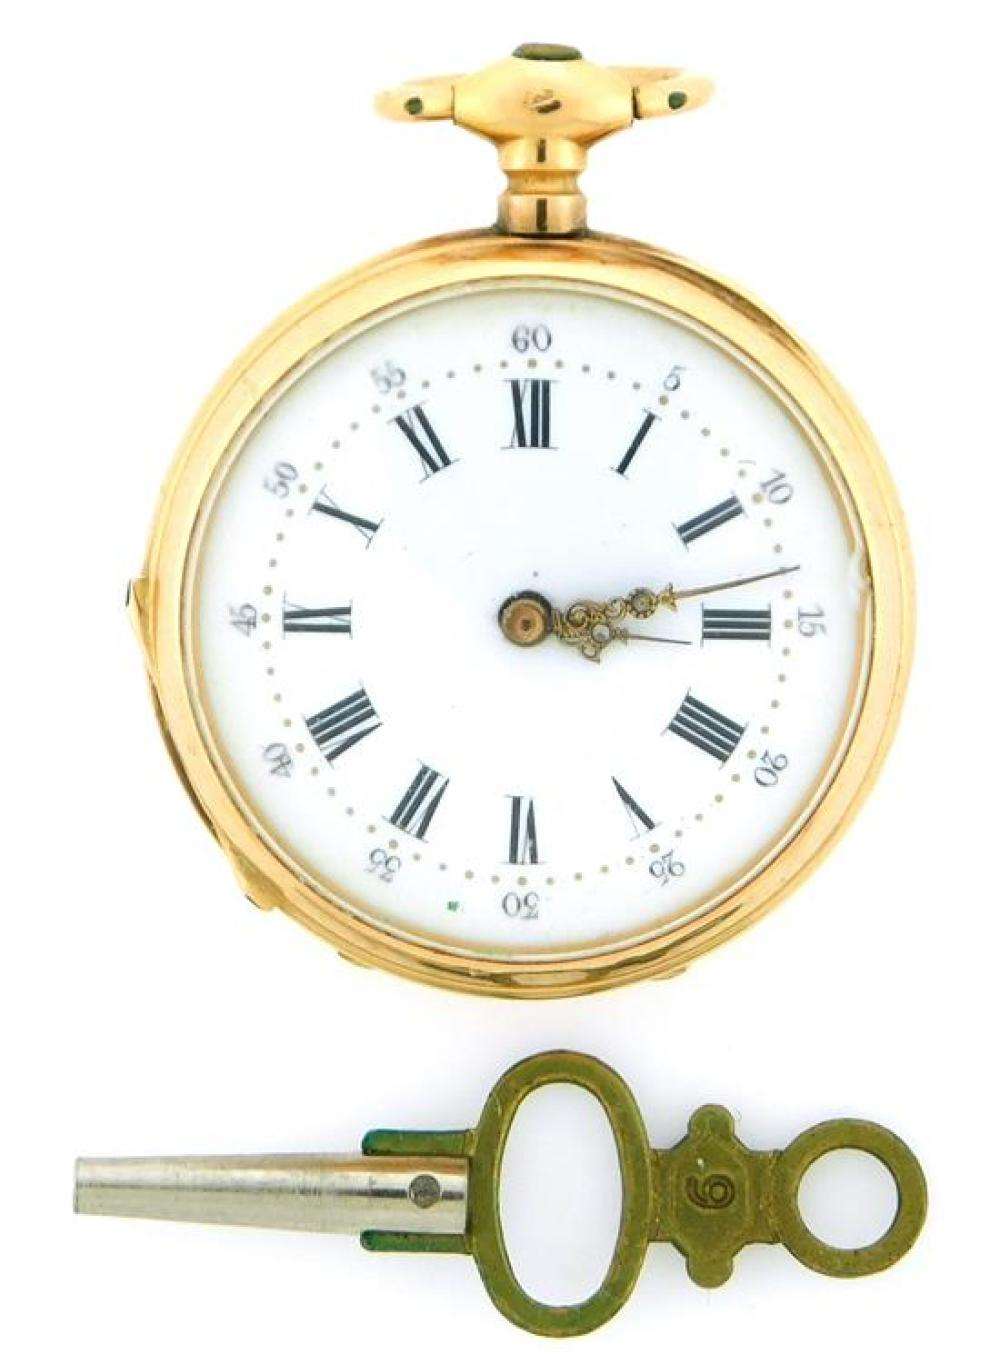 """JEWELRY: 18K Pendant Watch with Enamel, open face pendant watch with dustcover: tested 18K yellow gold, dust cover is engraved: """"Cyl..."""